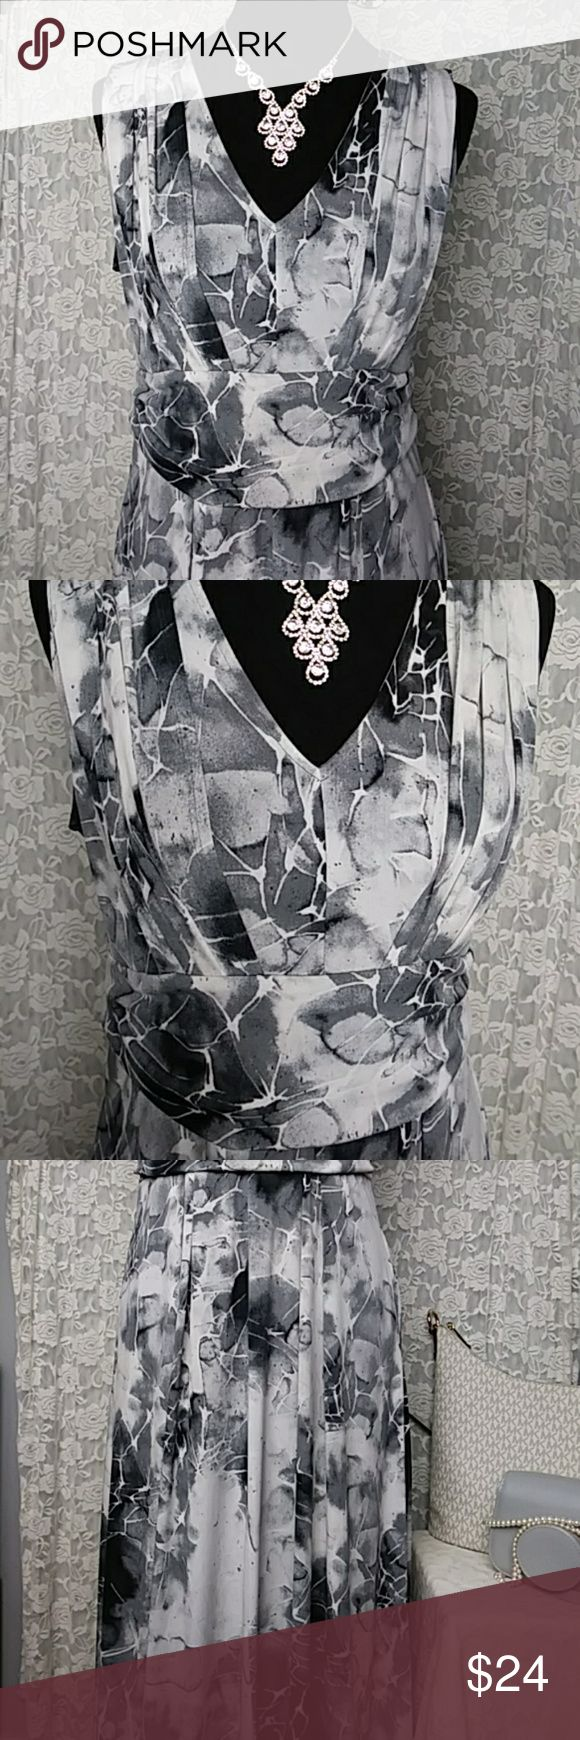 """Simply Vera Wang Marble Tie Dye Maxi Sun Dress Simply Vera Wang Size Petite Large Marble tie dye maxi dress Very elegant with pockets V neck. Sleeveless long dress From smoke and pet free home Measurments: Laying flat:  Top of shoulder to bottom hem- 50"""" Bust- 17"""" Waist- 15"""" Happy poshing, check out my closet New items added daily! Simply Vera Vera Wang Dresses Maxi"""